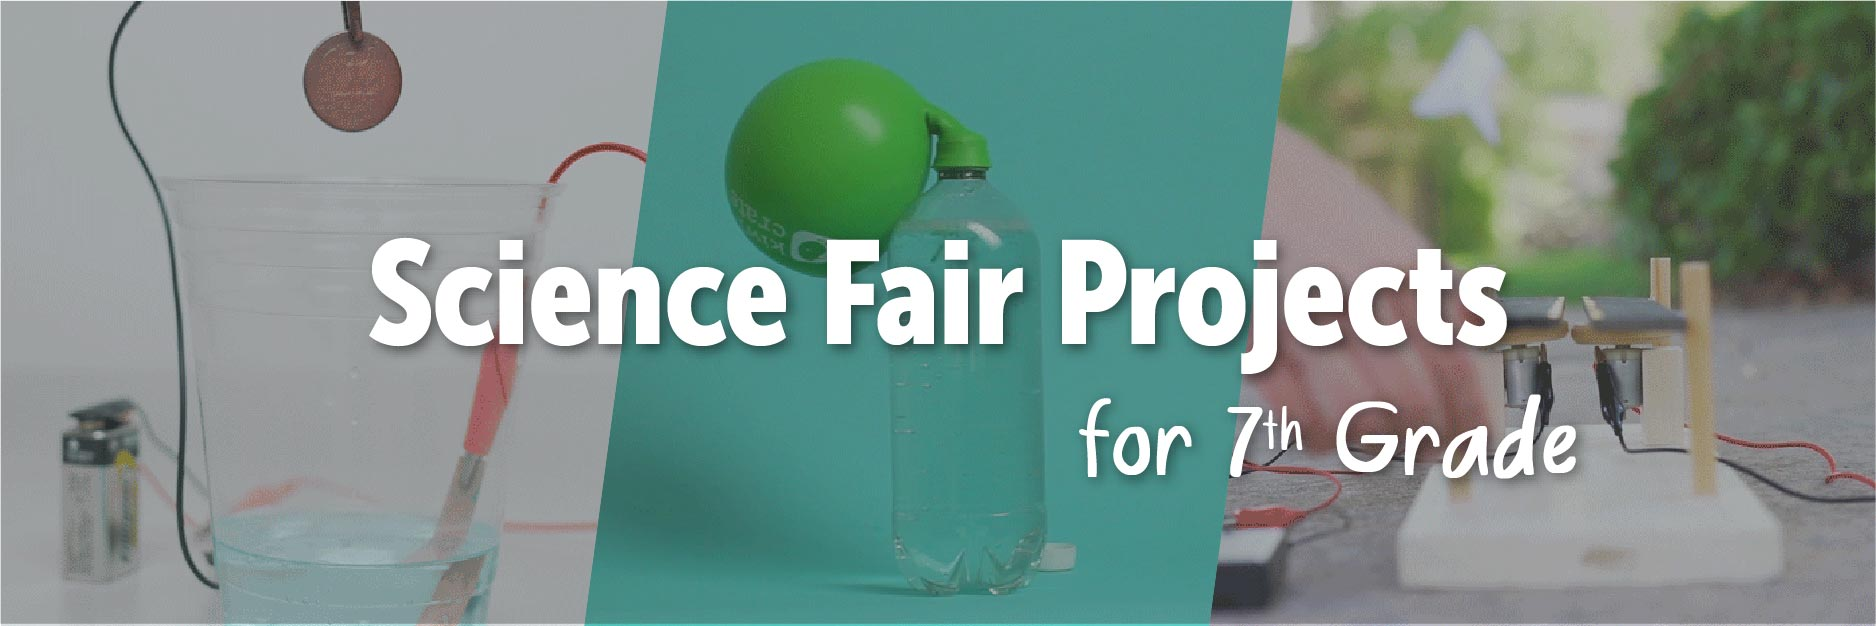 science fair projects for 7th grade kiwico